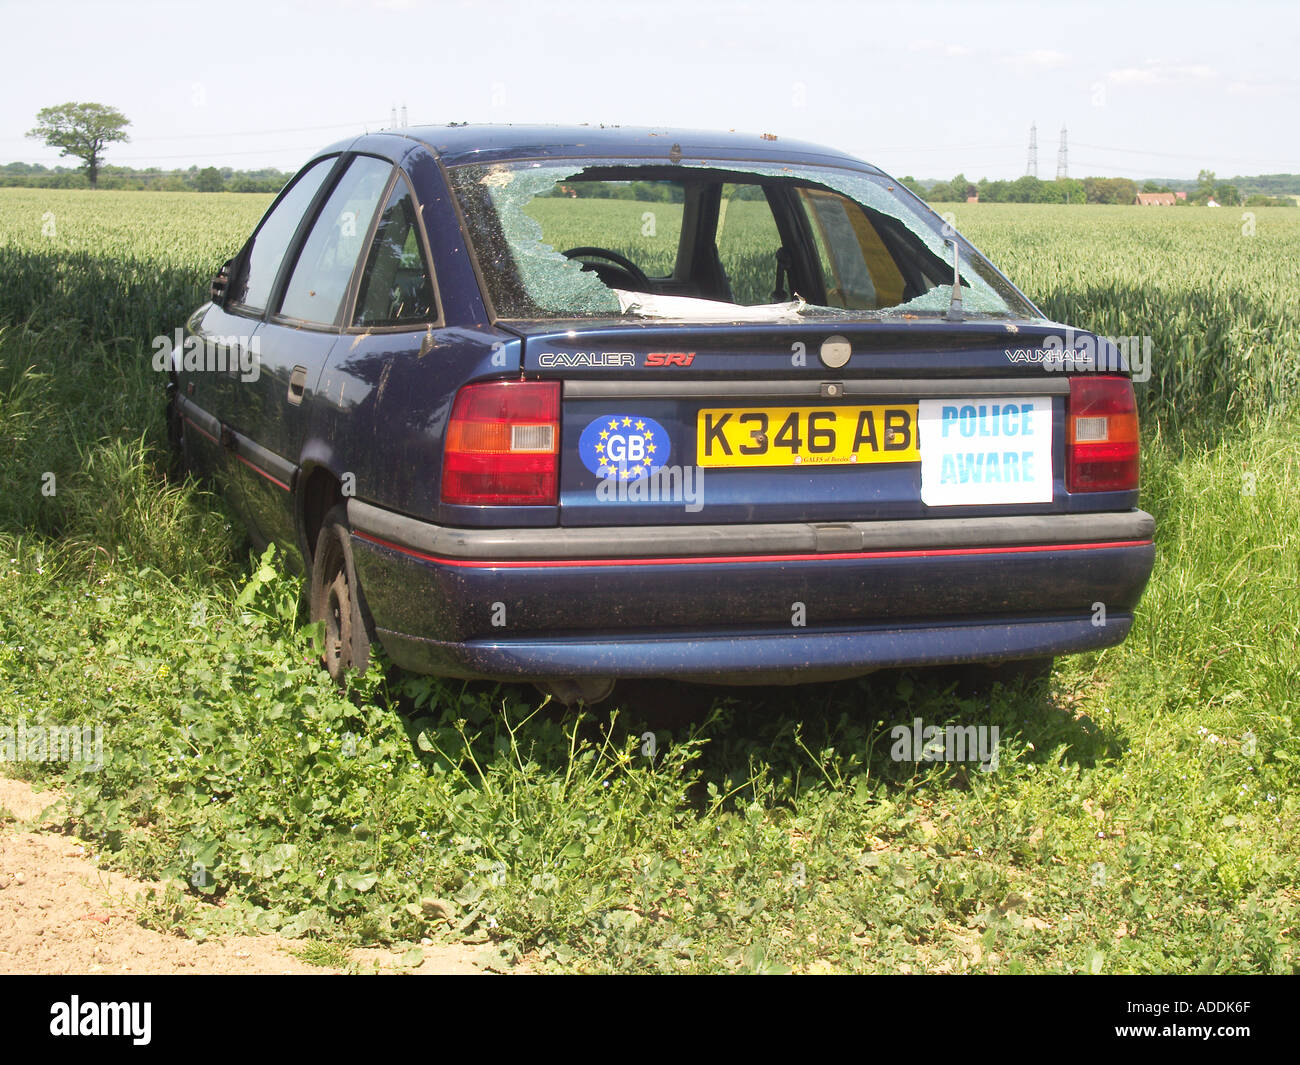 Abandoned car with smashed rear window in a field with Police Aware sticker - Stock Image